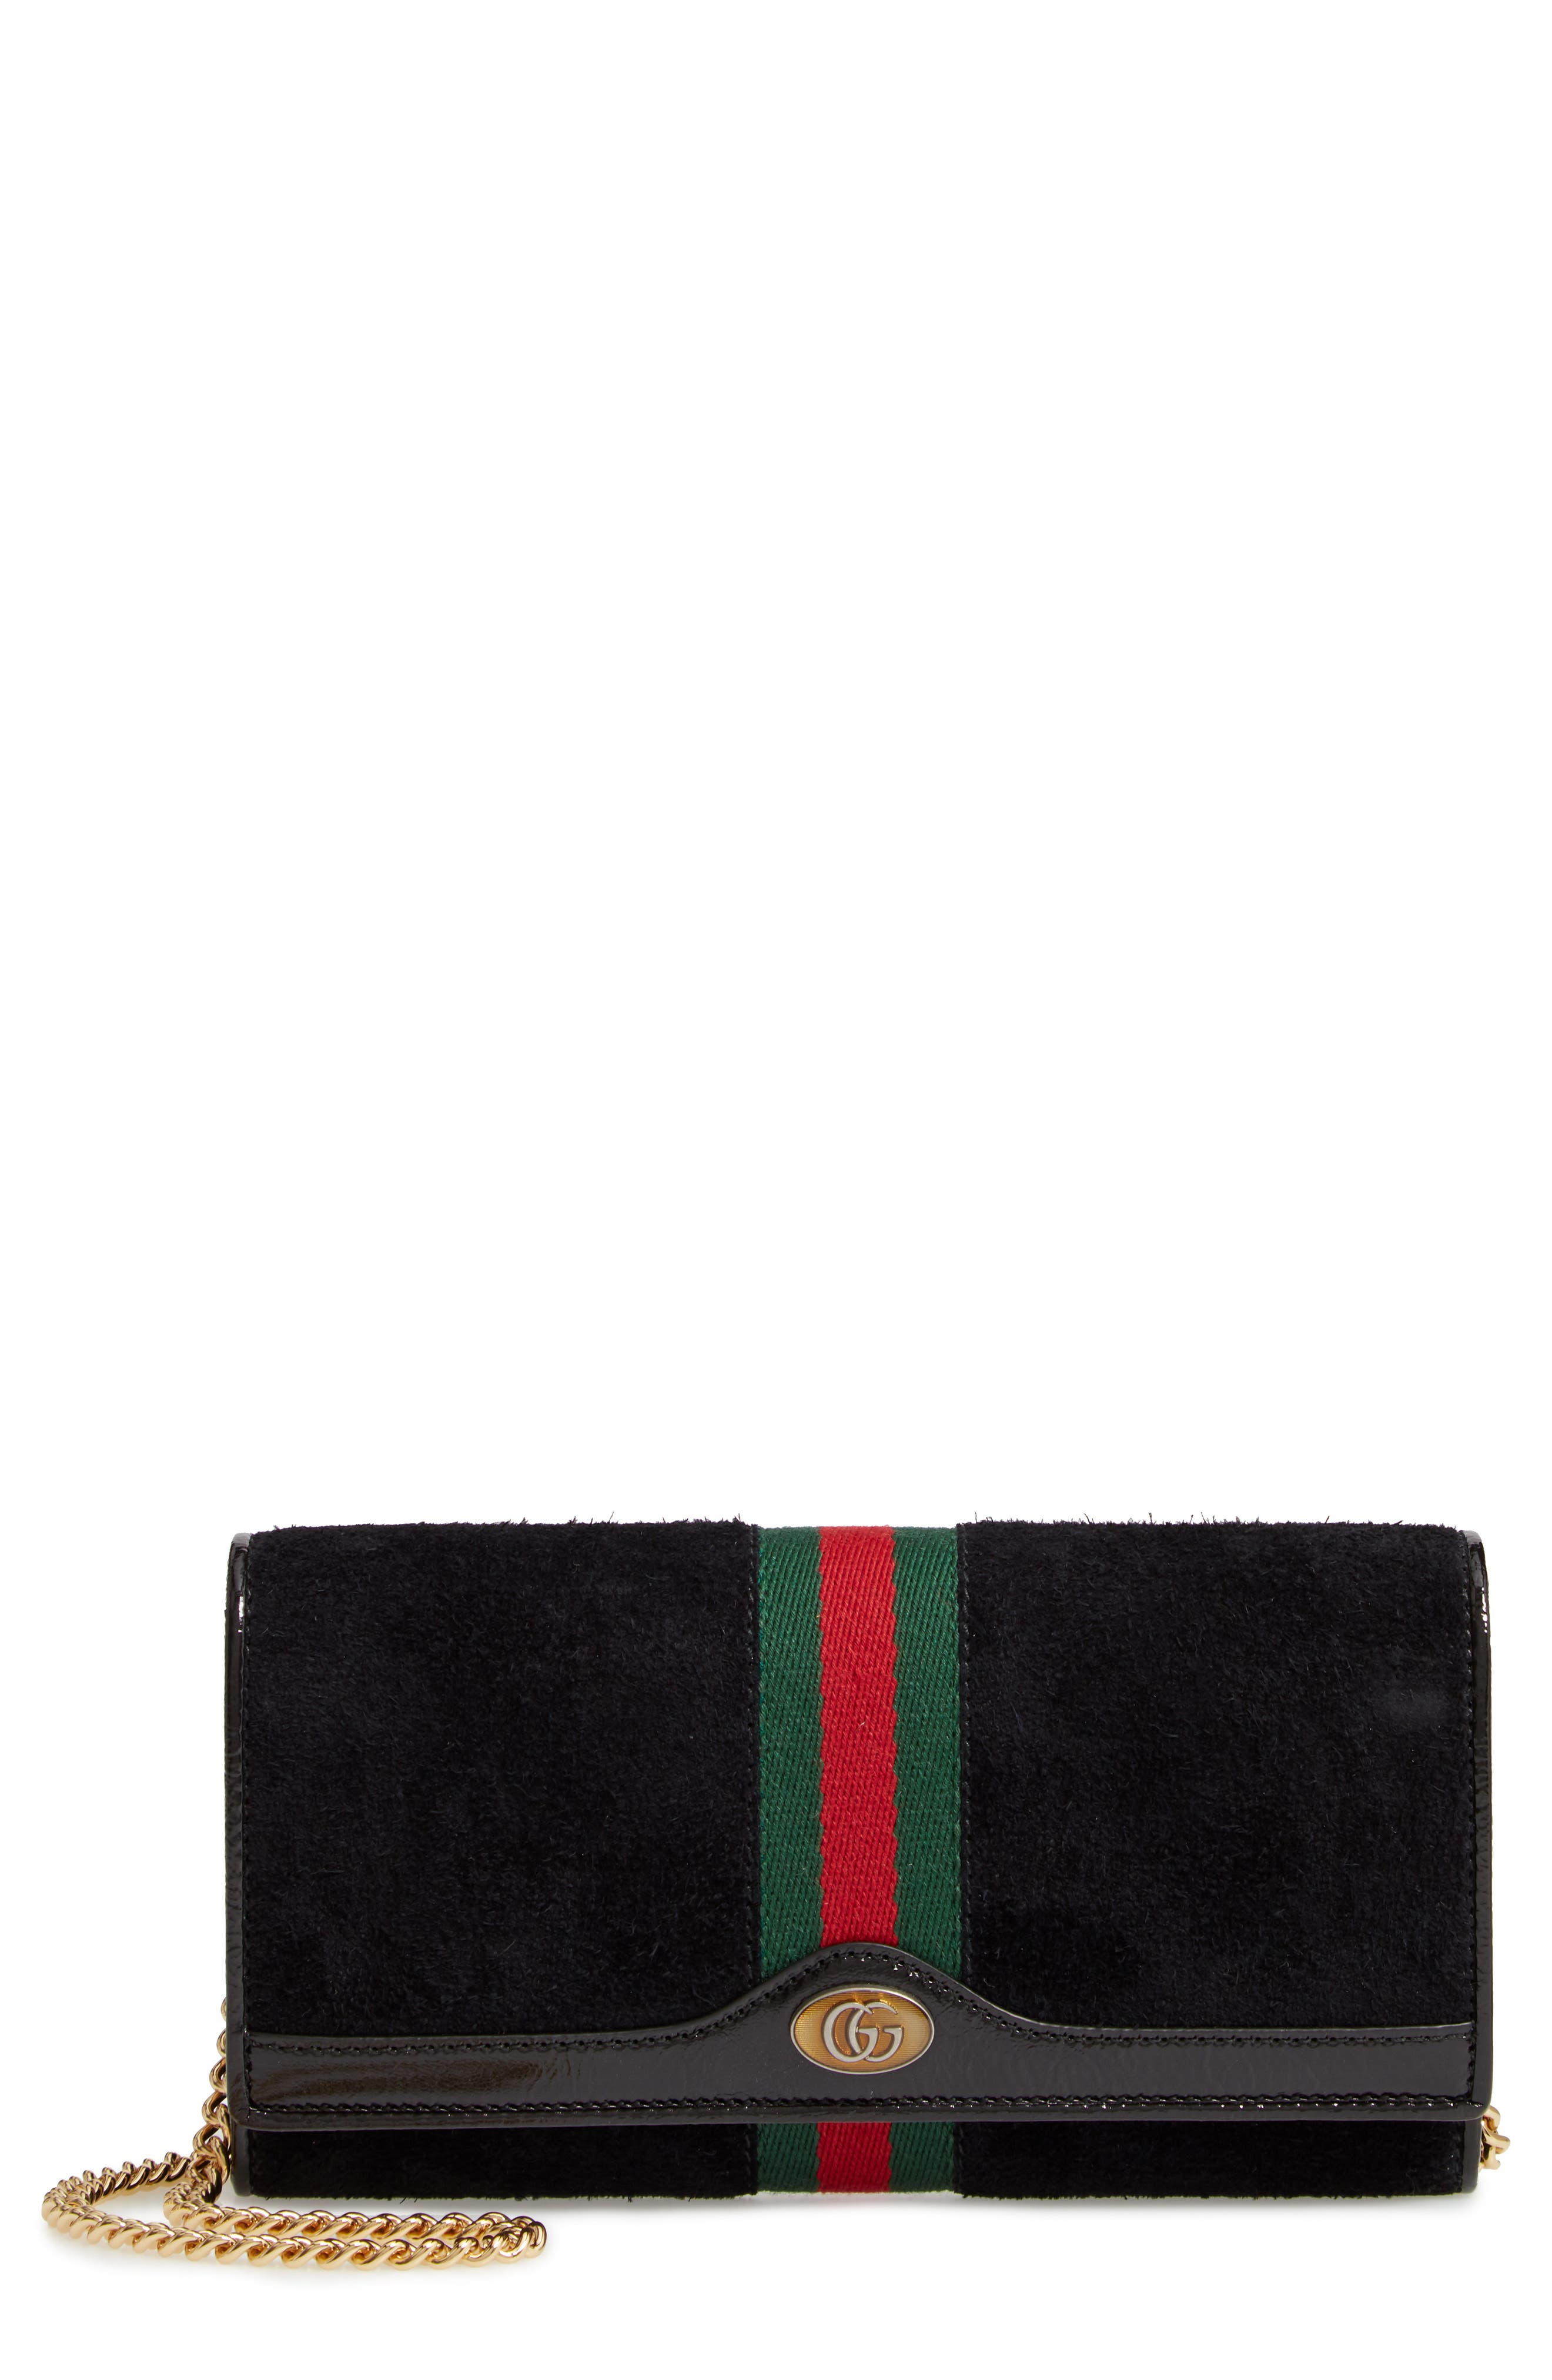 Ophidia Suede Continental Wallet,                             Main thumbnail 1, color,                             NERO/ VERT/ RED